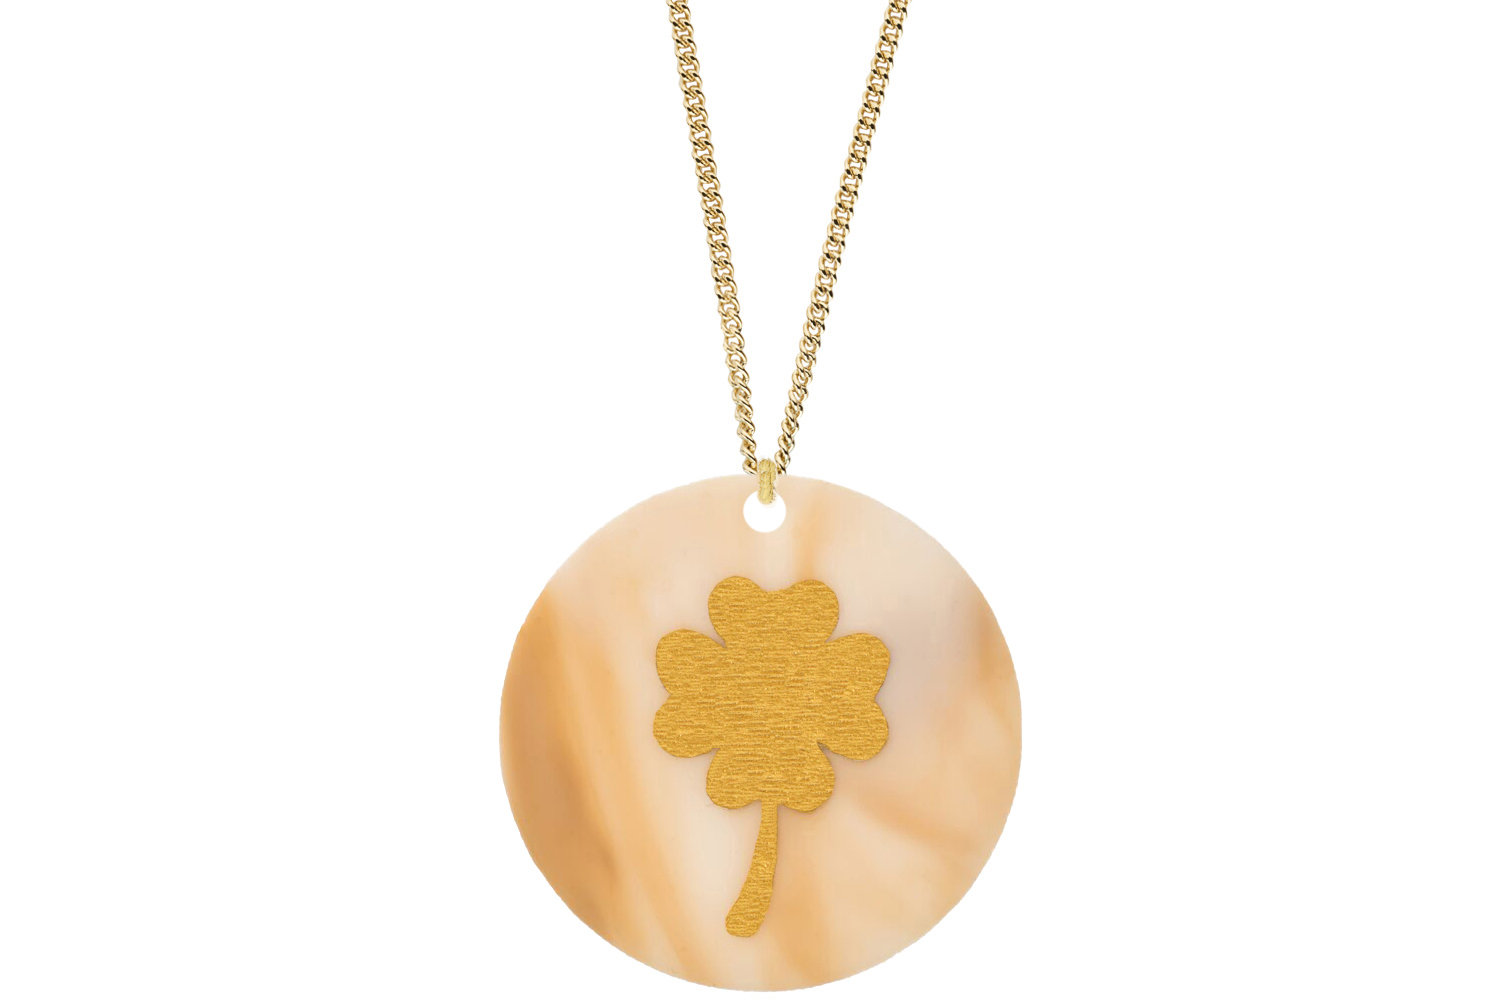 Clover Pendant Subtle Style Refined with Paint on Chain Necklace